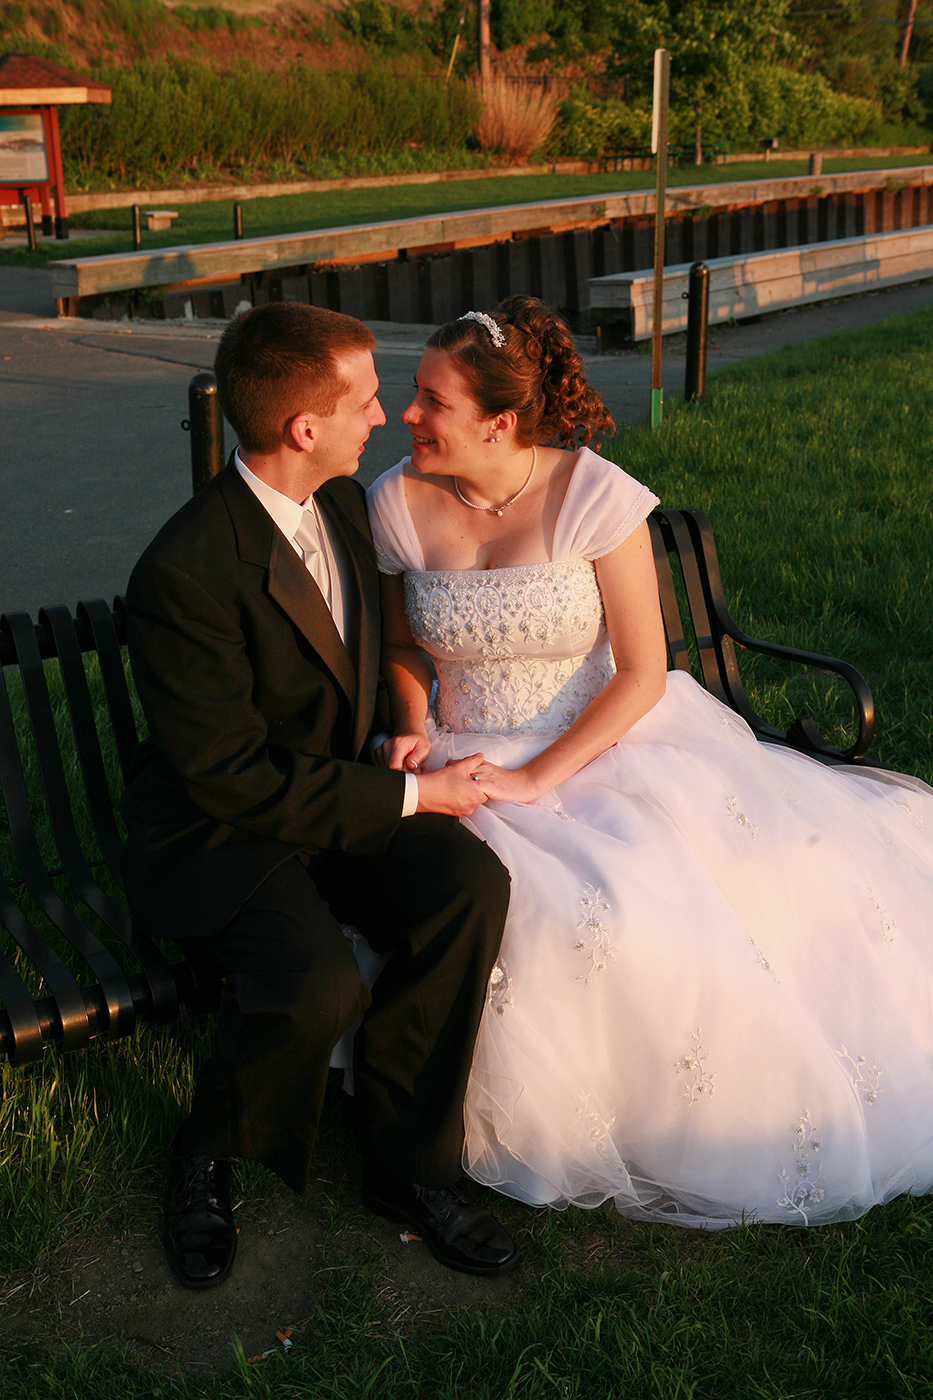 Wedding Photograph in warn sunset light at the Rhinecliff NY